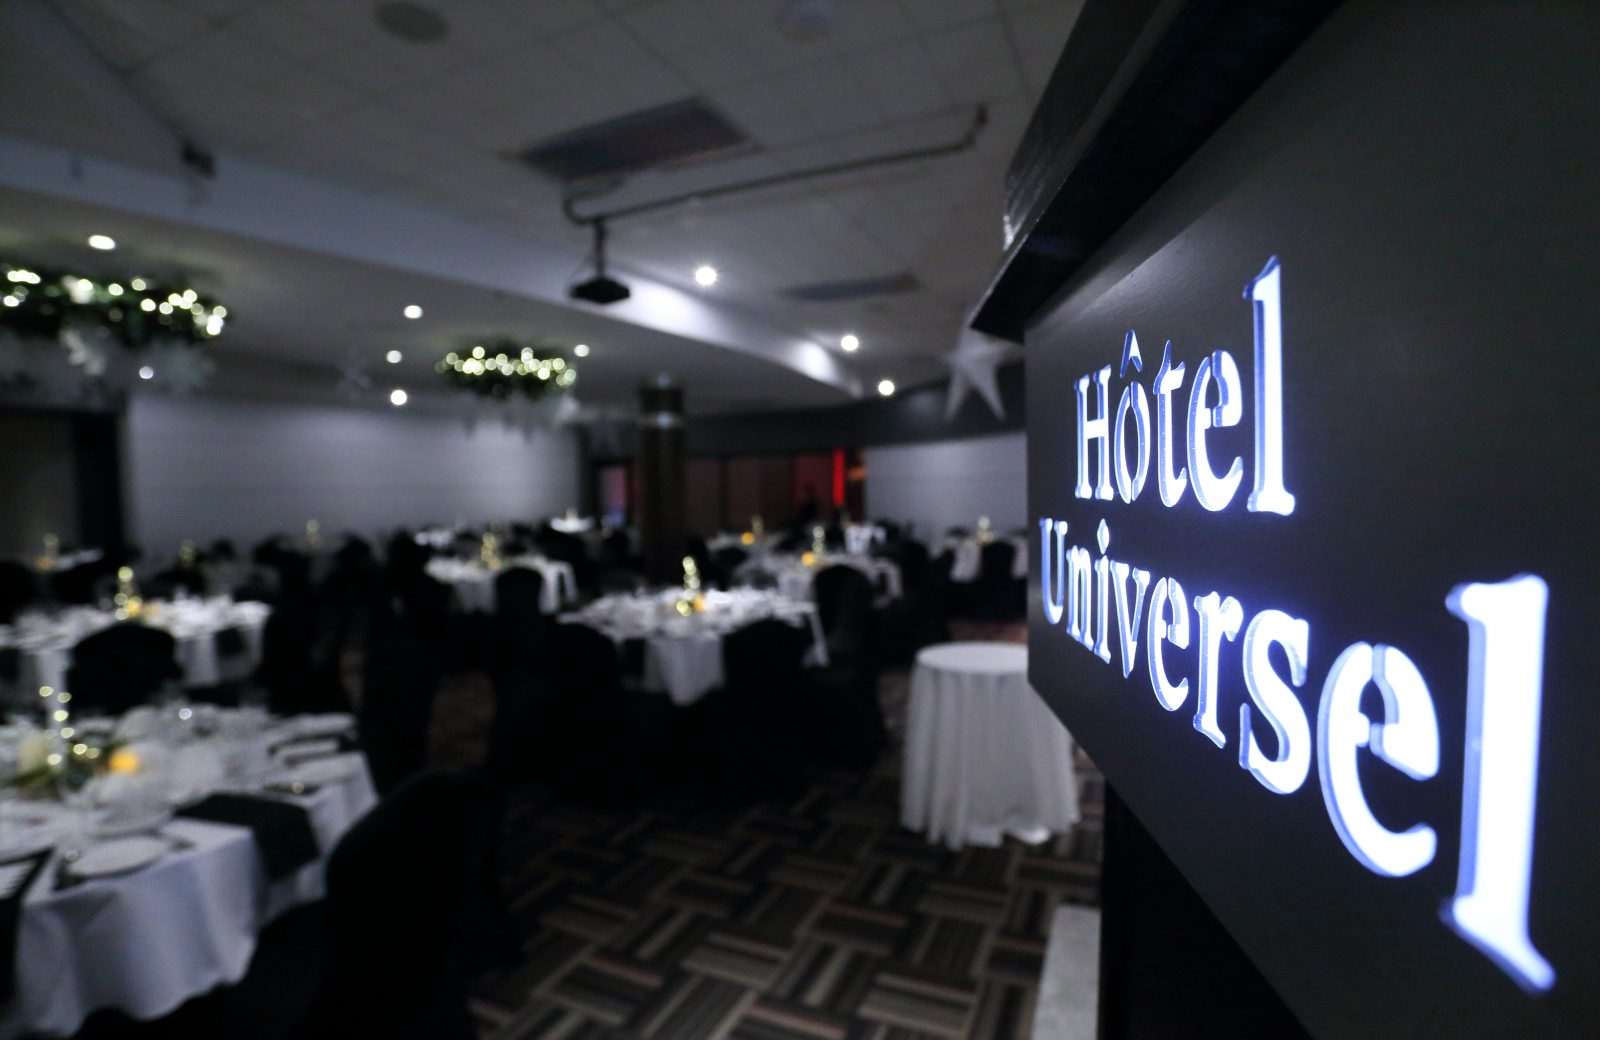 https://www.hoteluniversel.com/wp-content/uploads/2018/04/Ambiance-5-1600x1040.jpg